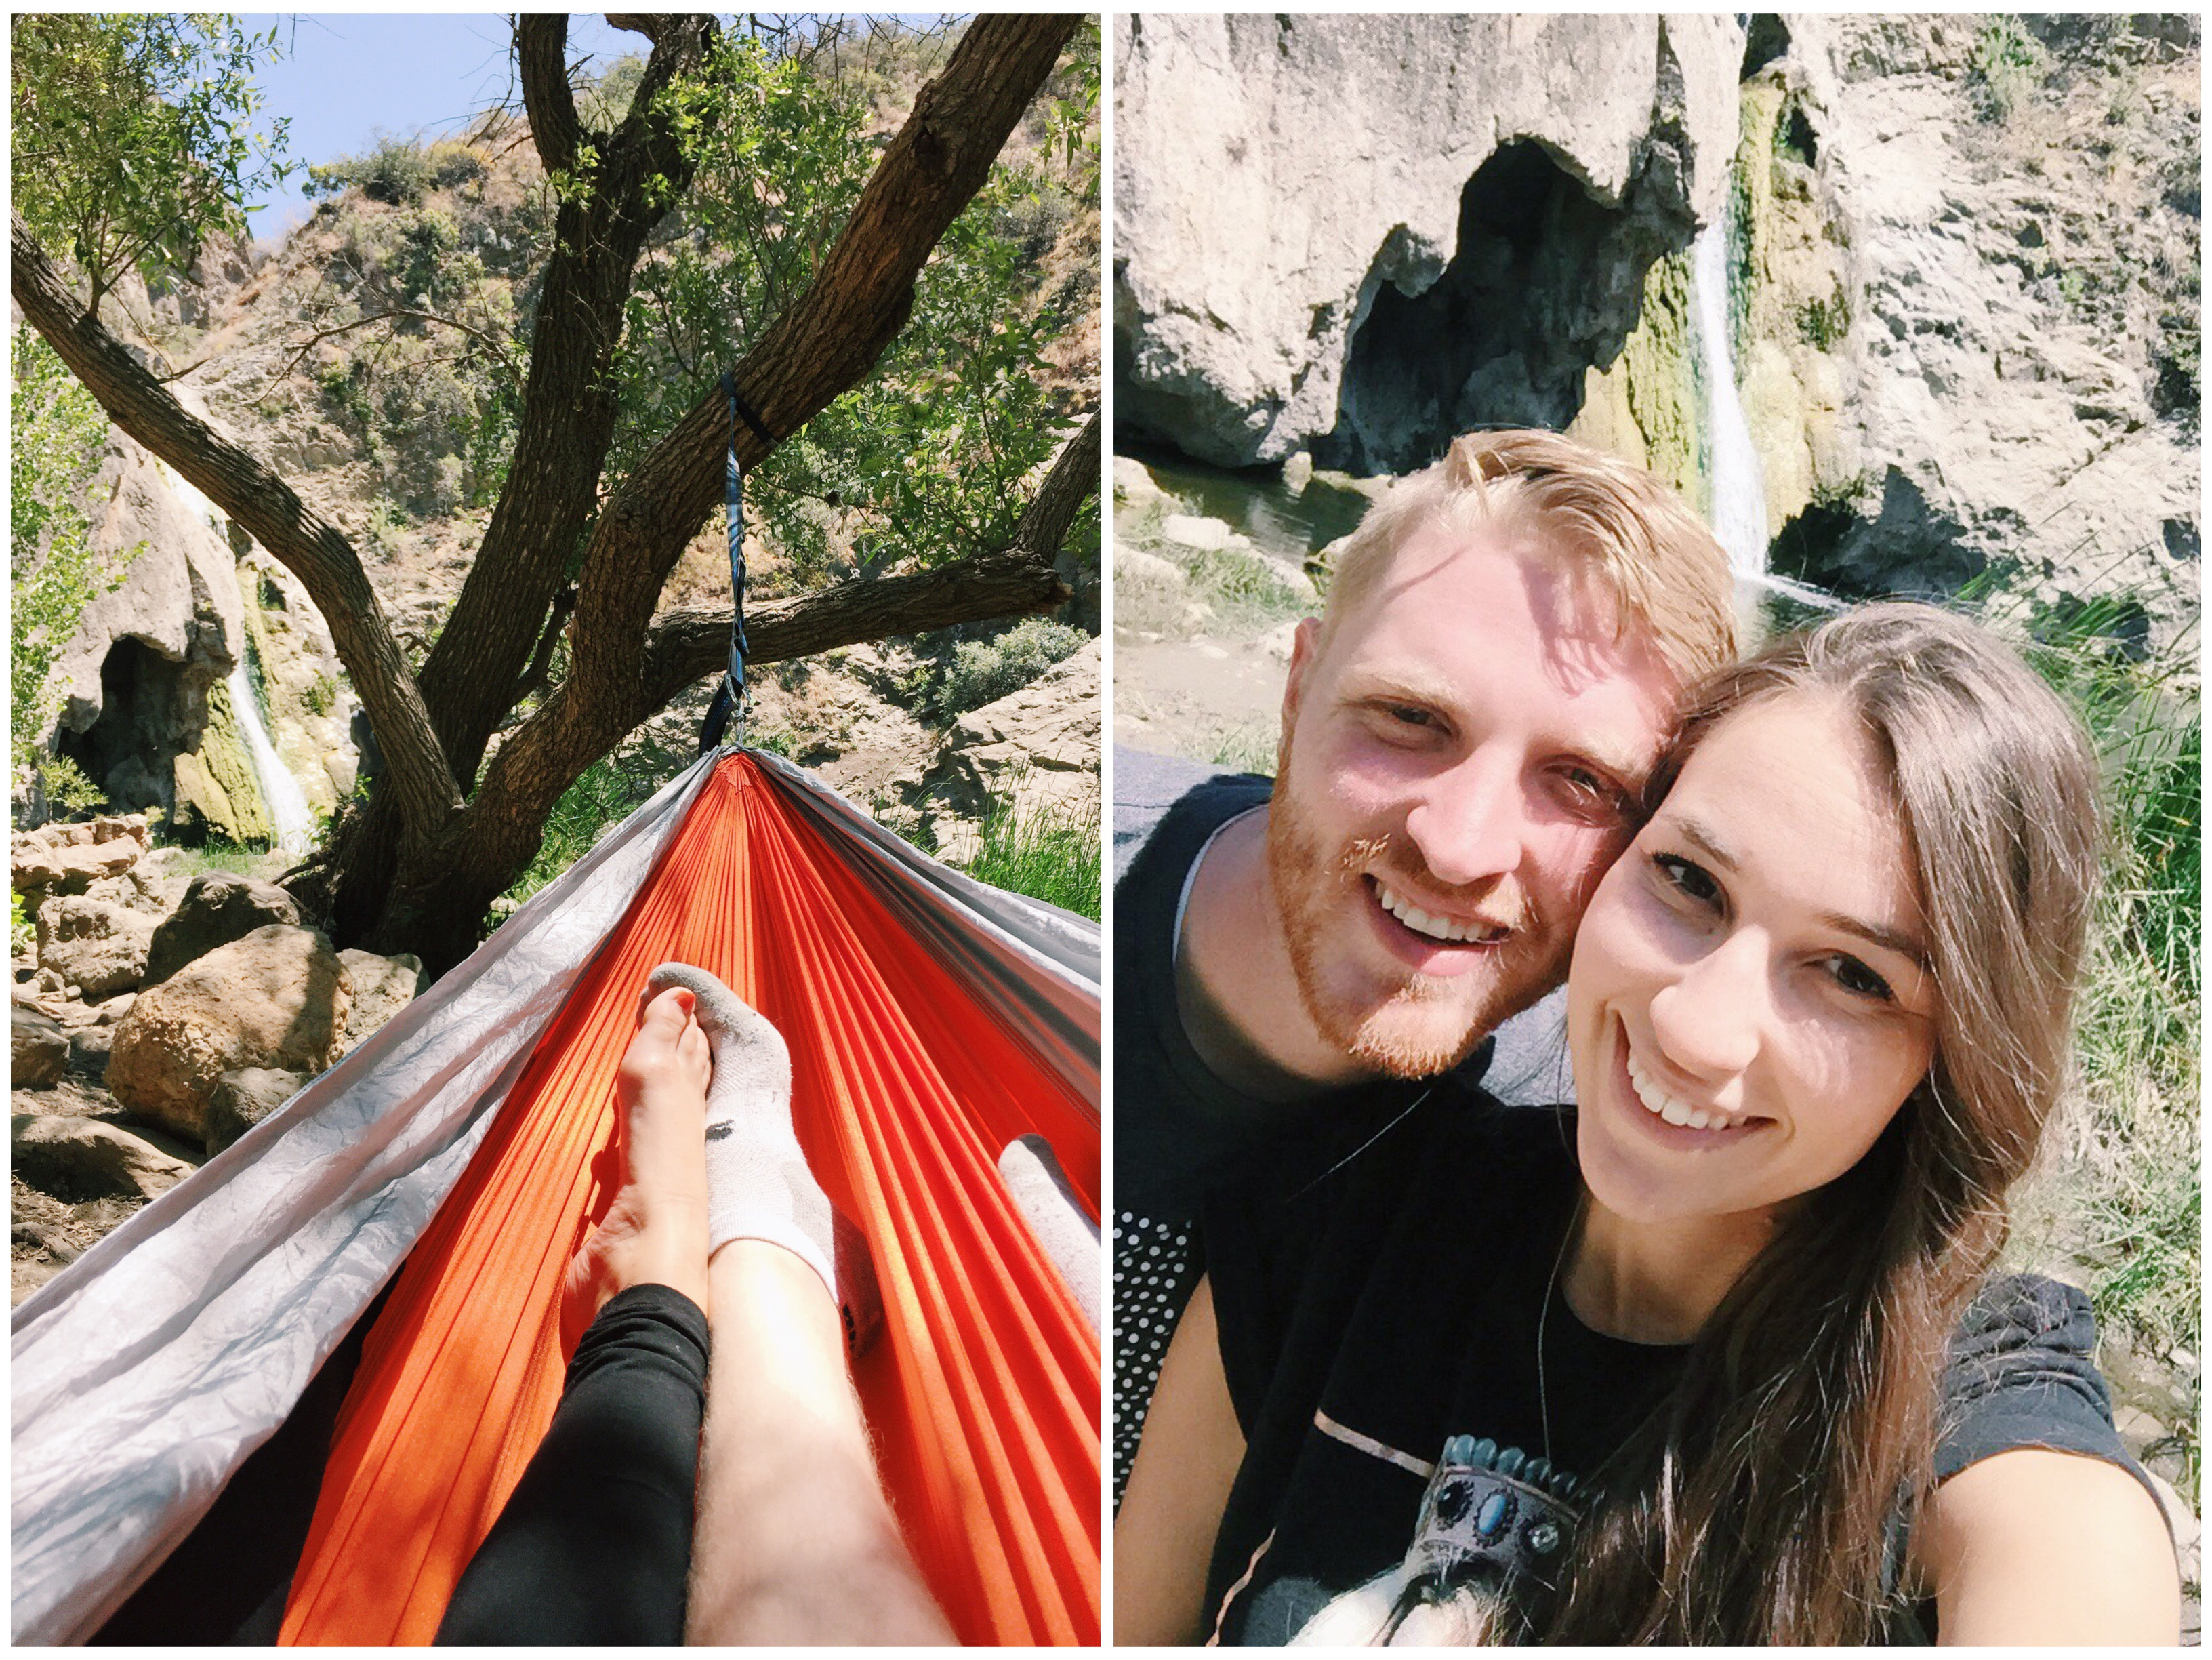 The Hammock Diaries: Paradise Falls